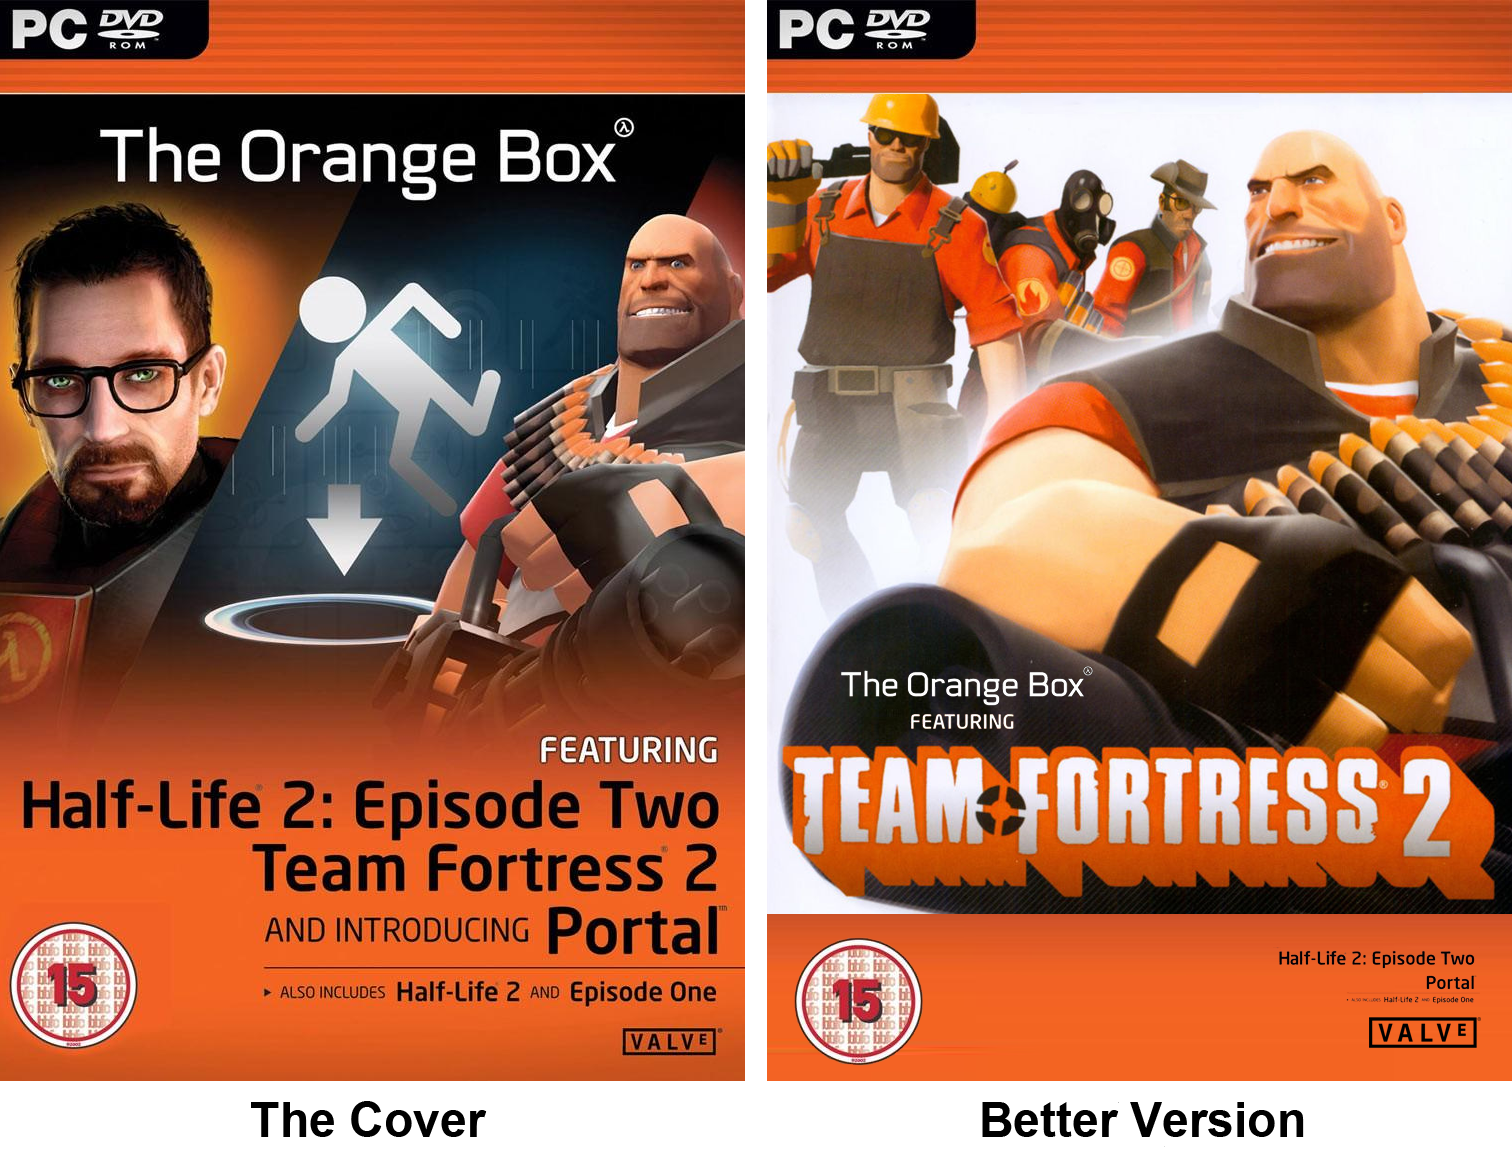 Oct 23, 2017 Team Fortress 2 Update Released Team